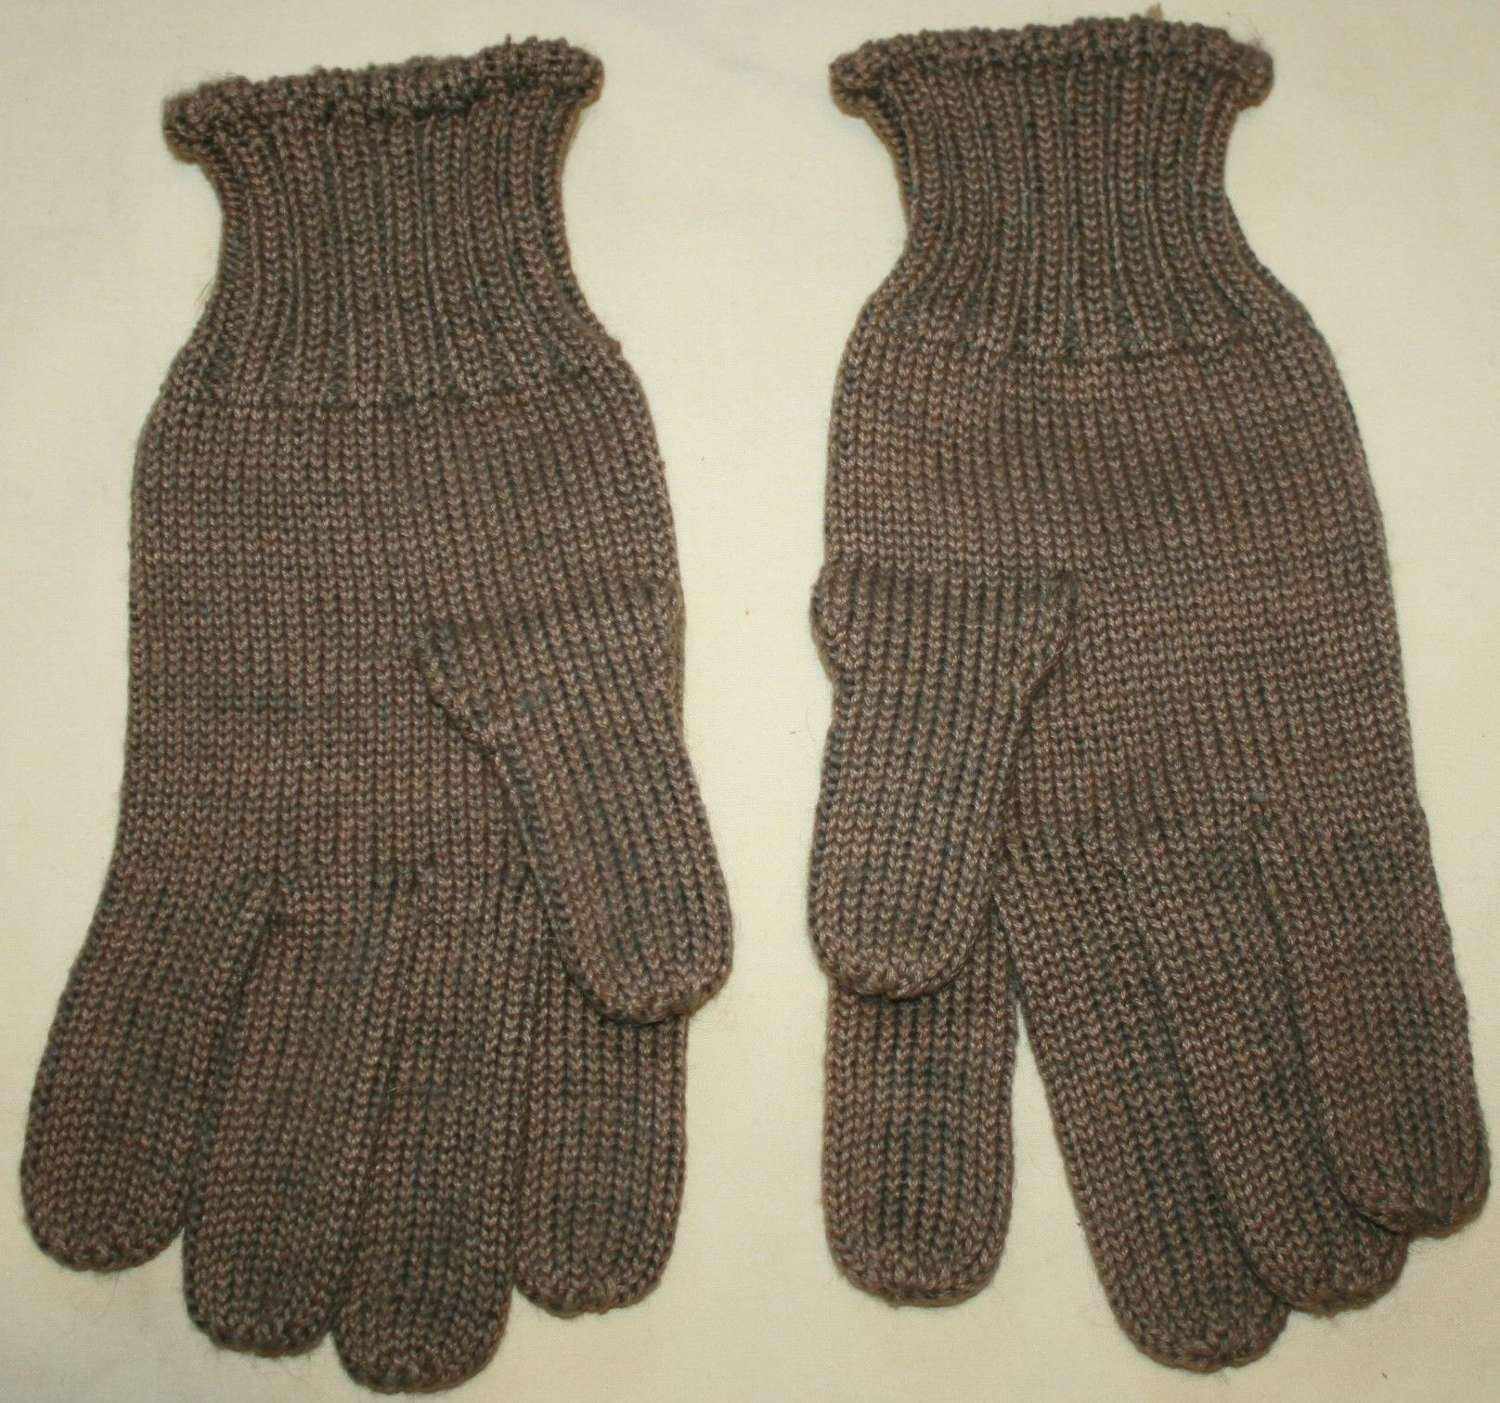 A WWII PAIR OF WOOLEN GLOVES